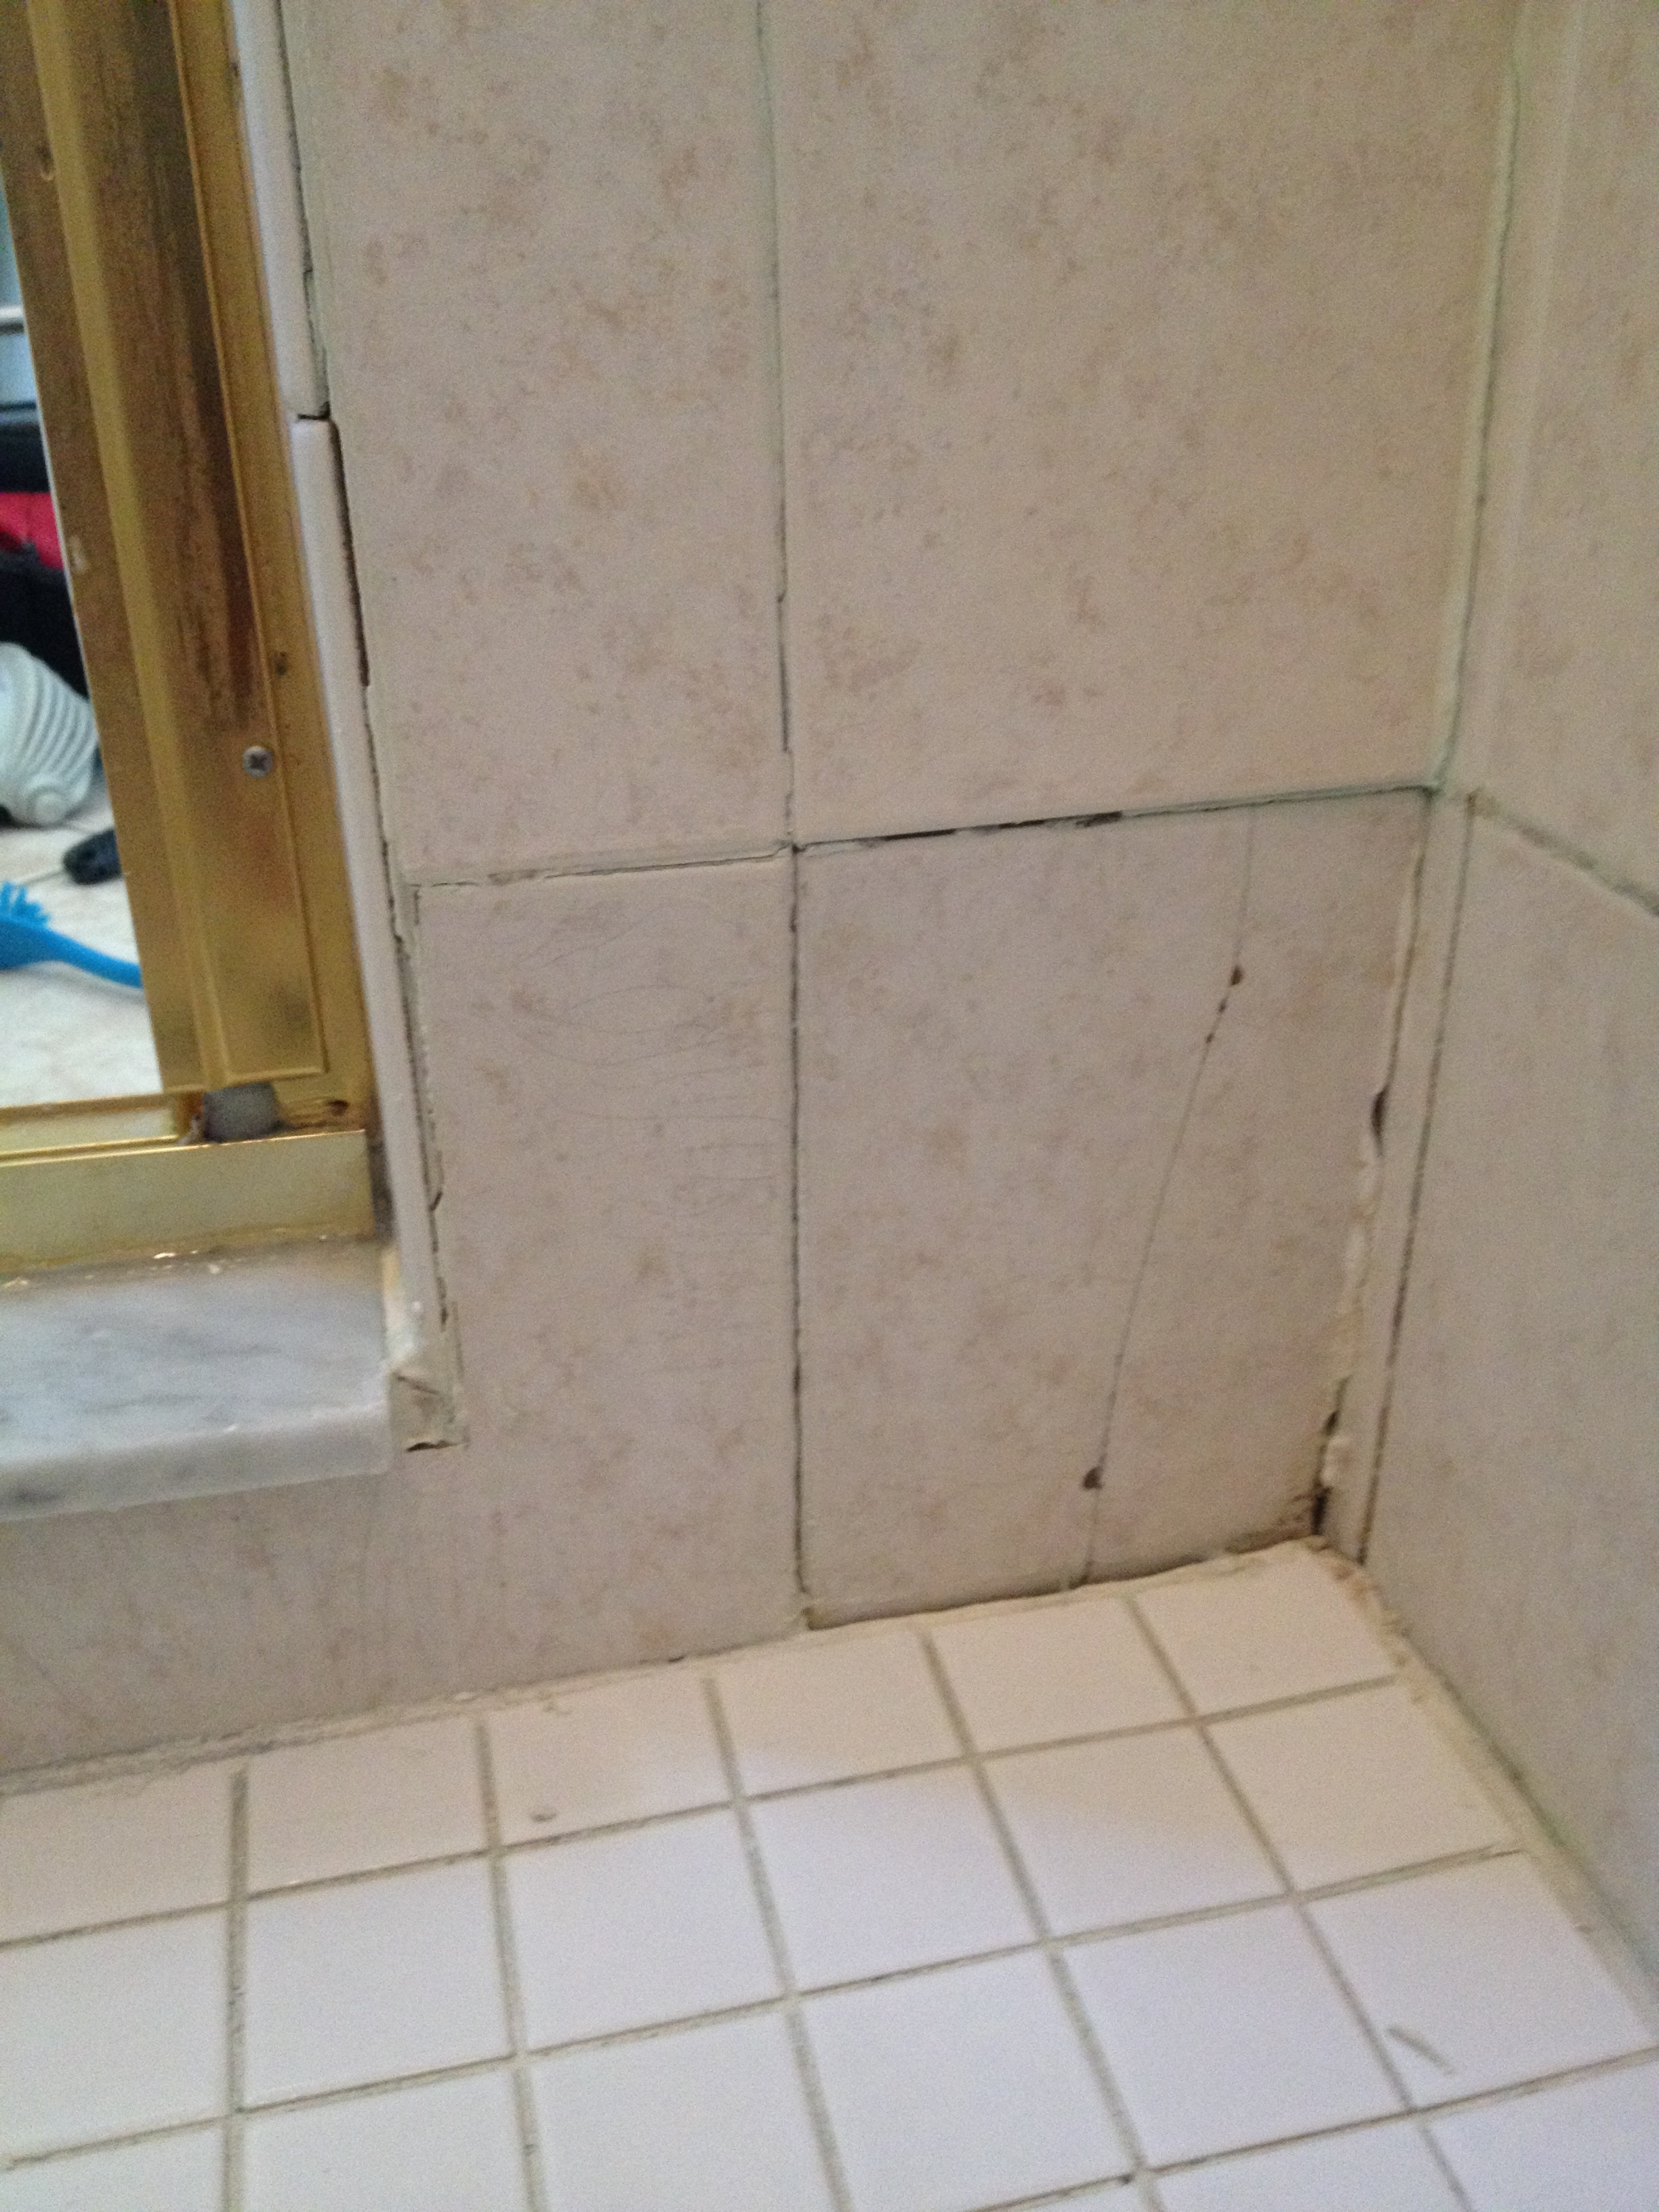 Poorly Maintained Tile and Grout